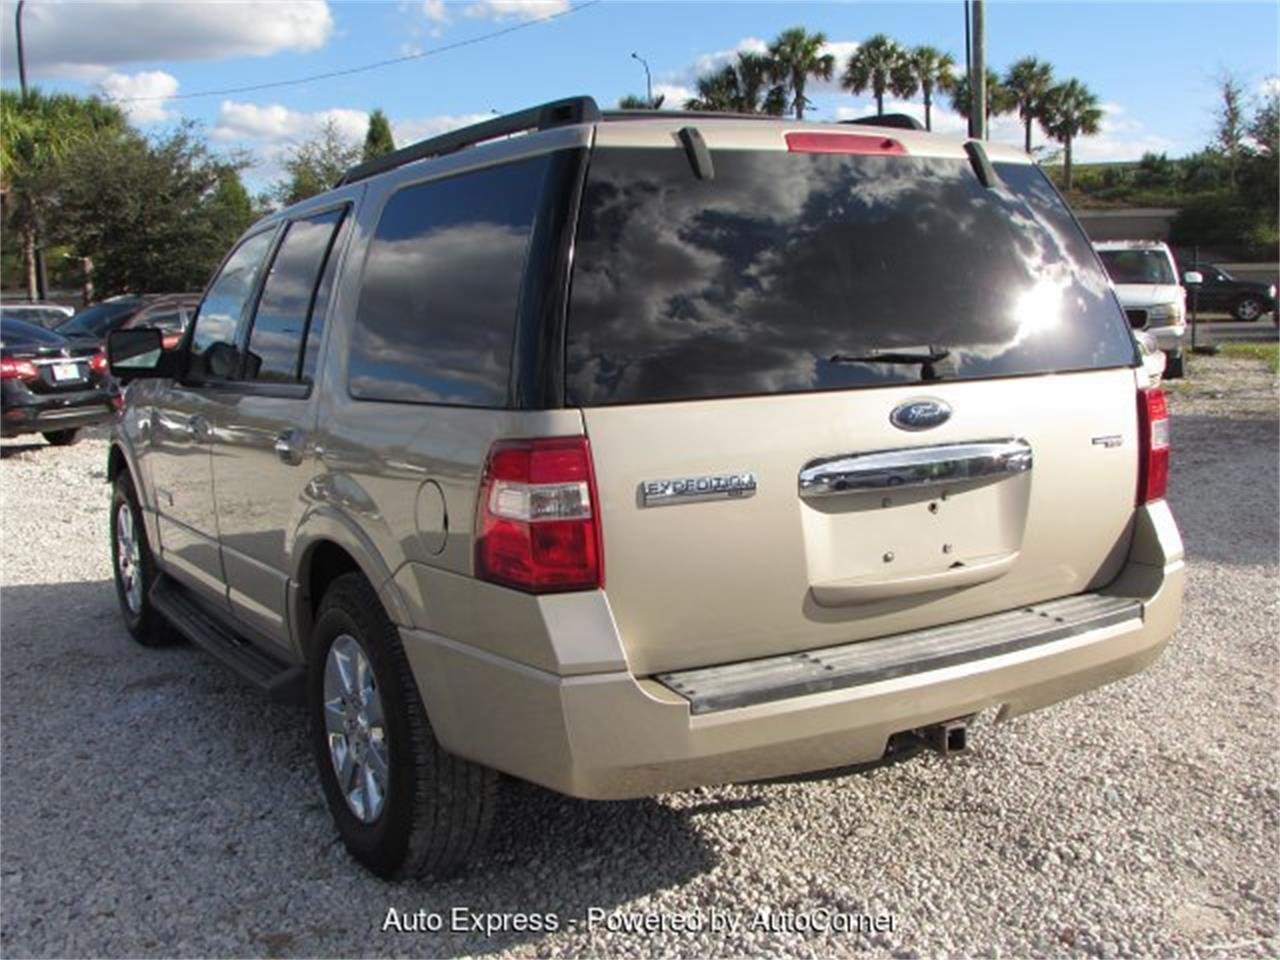 2008 Ford Expedition for sale in Orlando, FL – photo 5